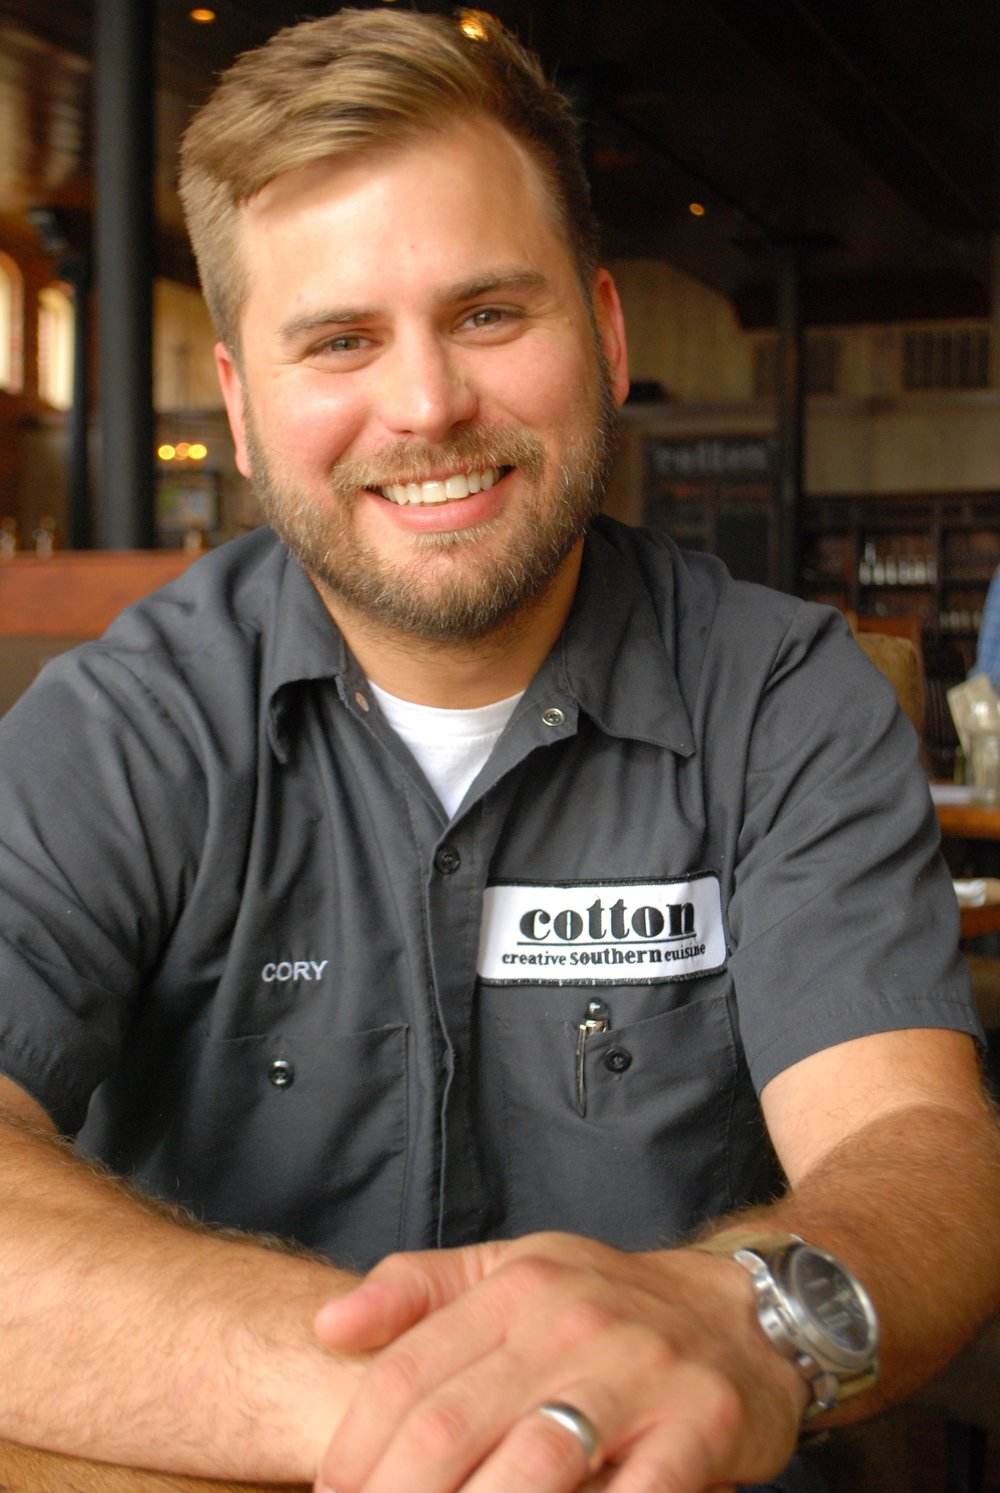 Chef Cory Bahr Owner of Restaurant Cotton and Nonnas in Monroe, Louisiana